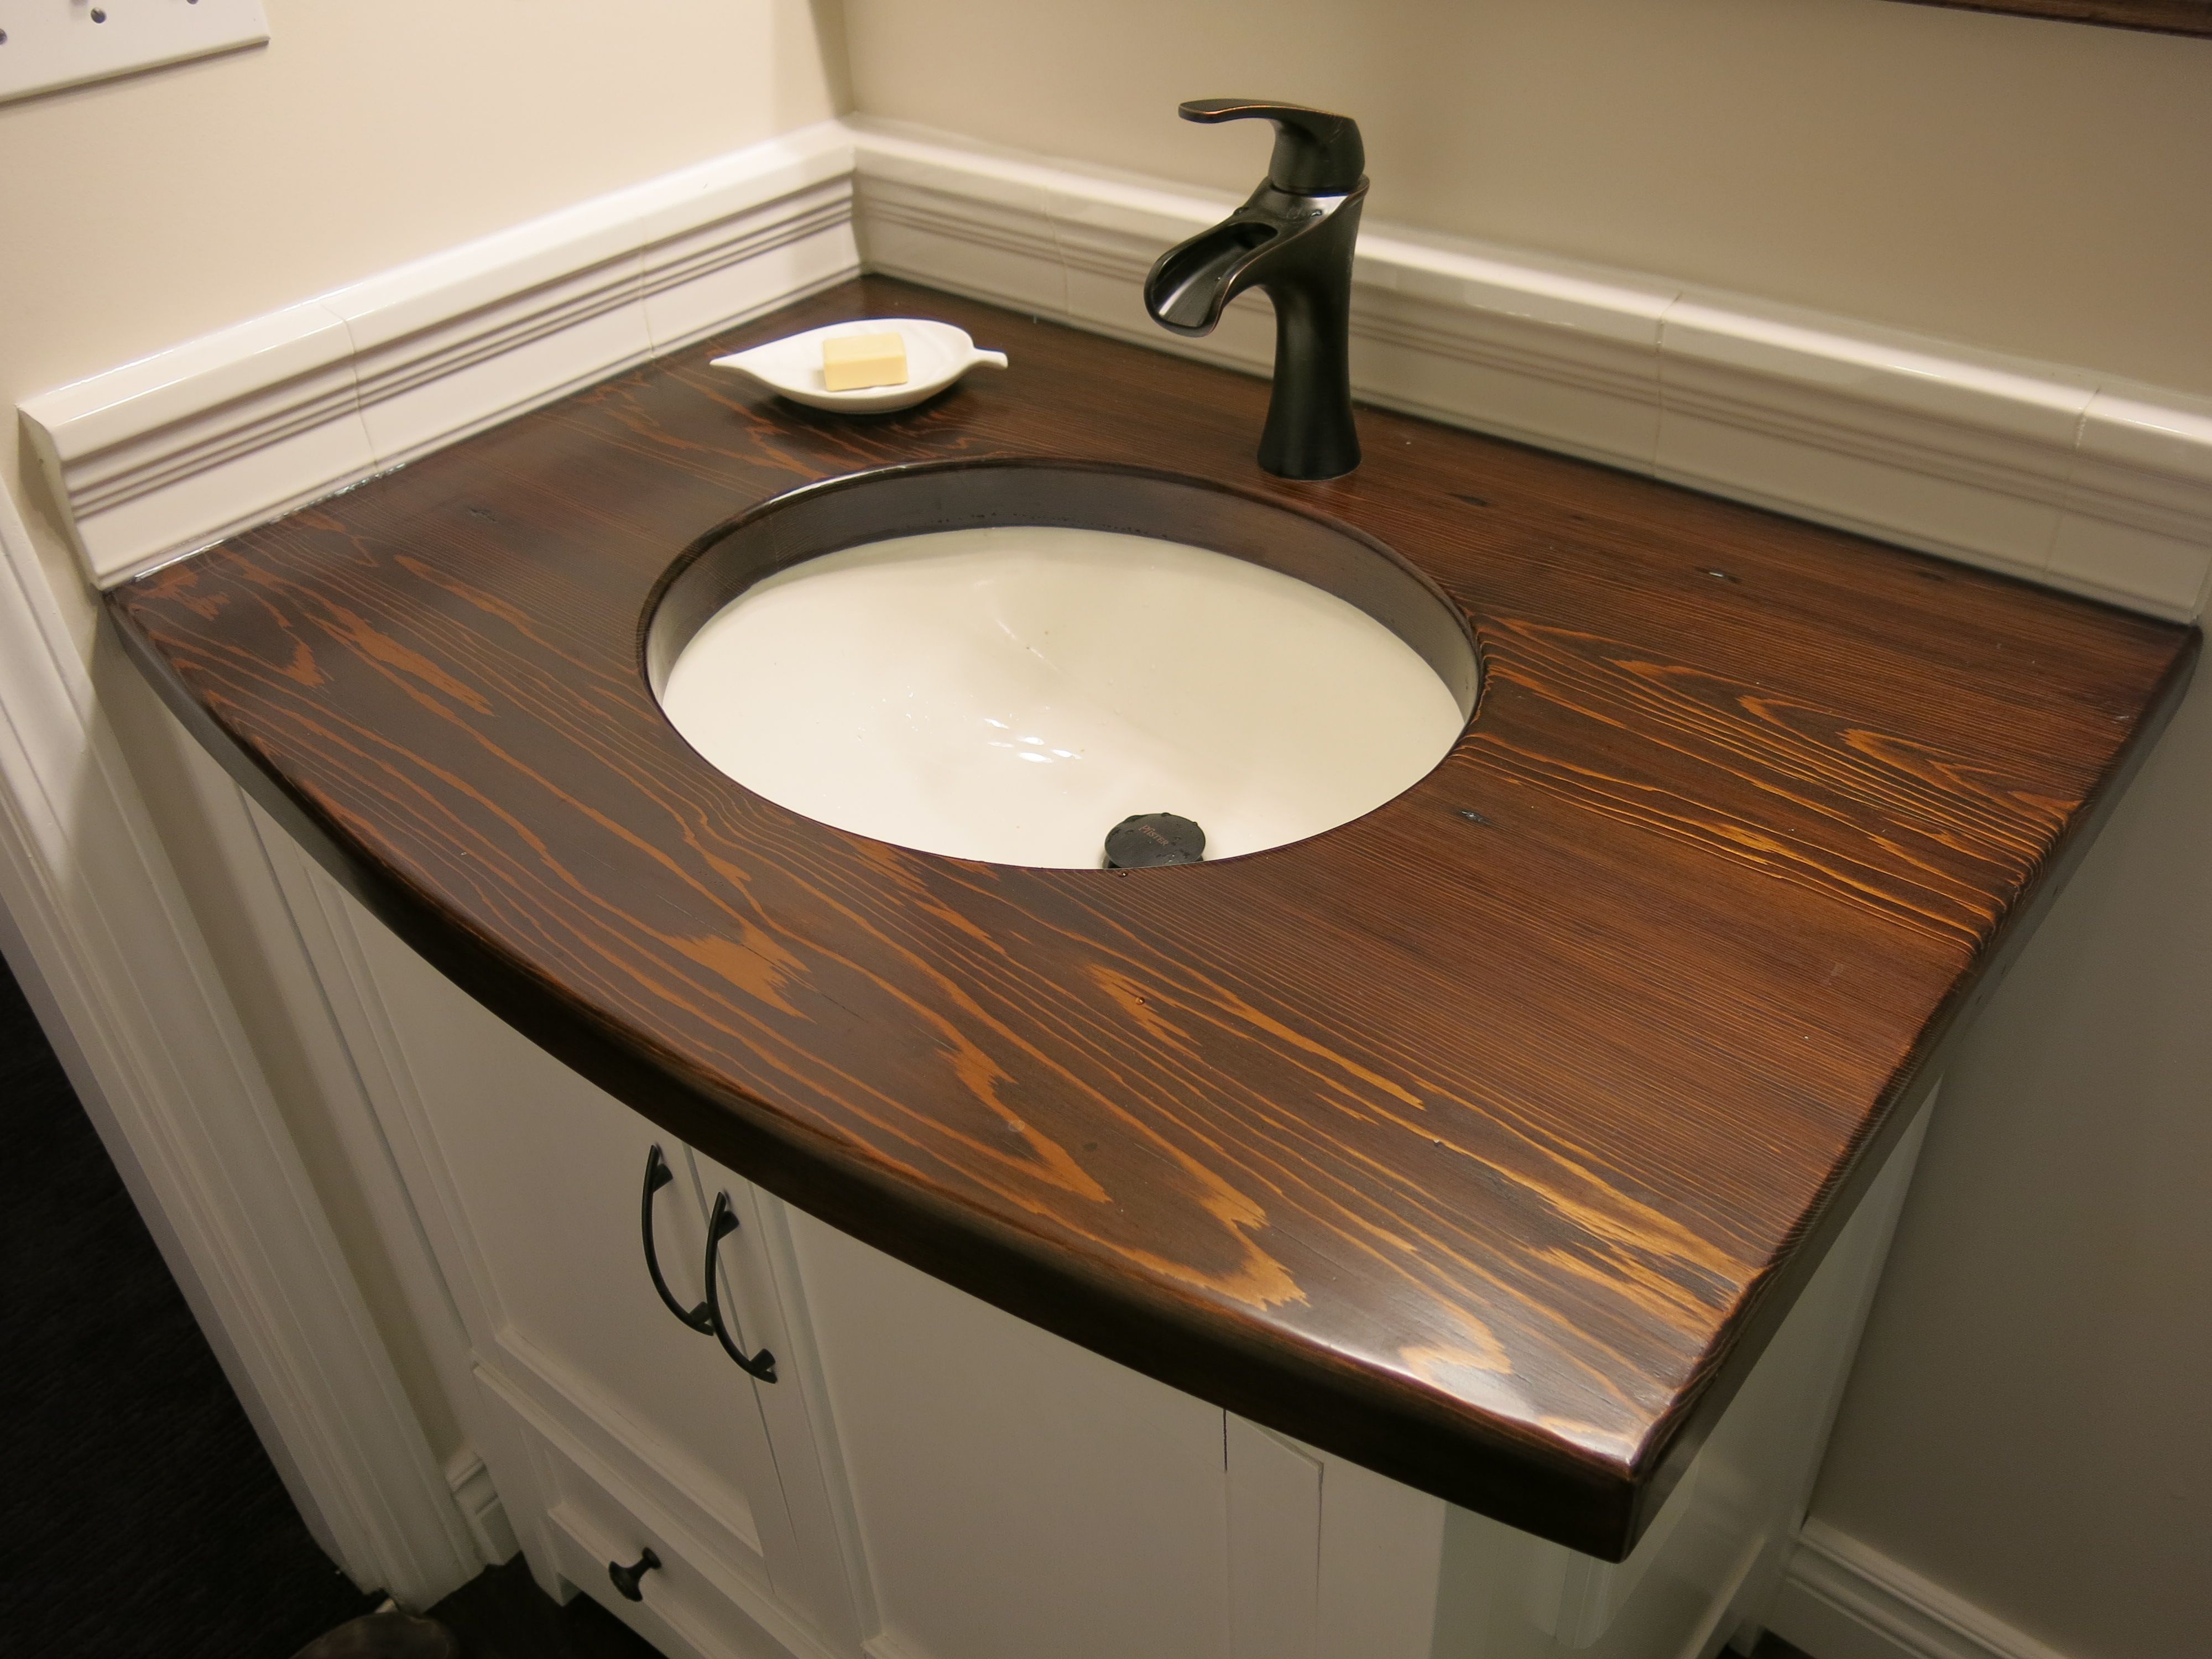 wooden bathroom sink cabinet countertop oil rubbed bronze